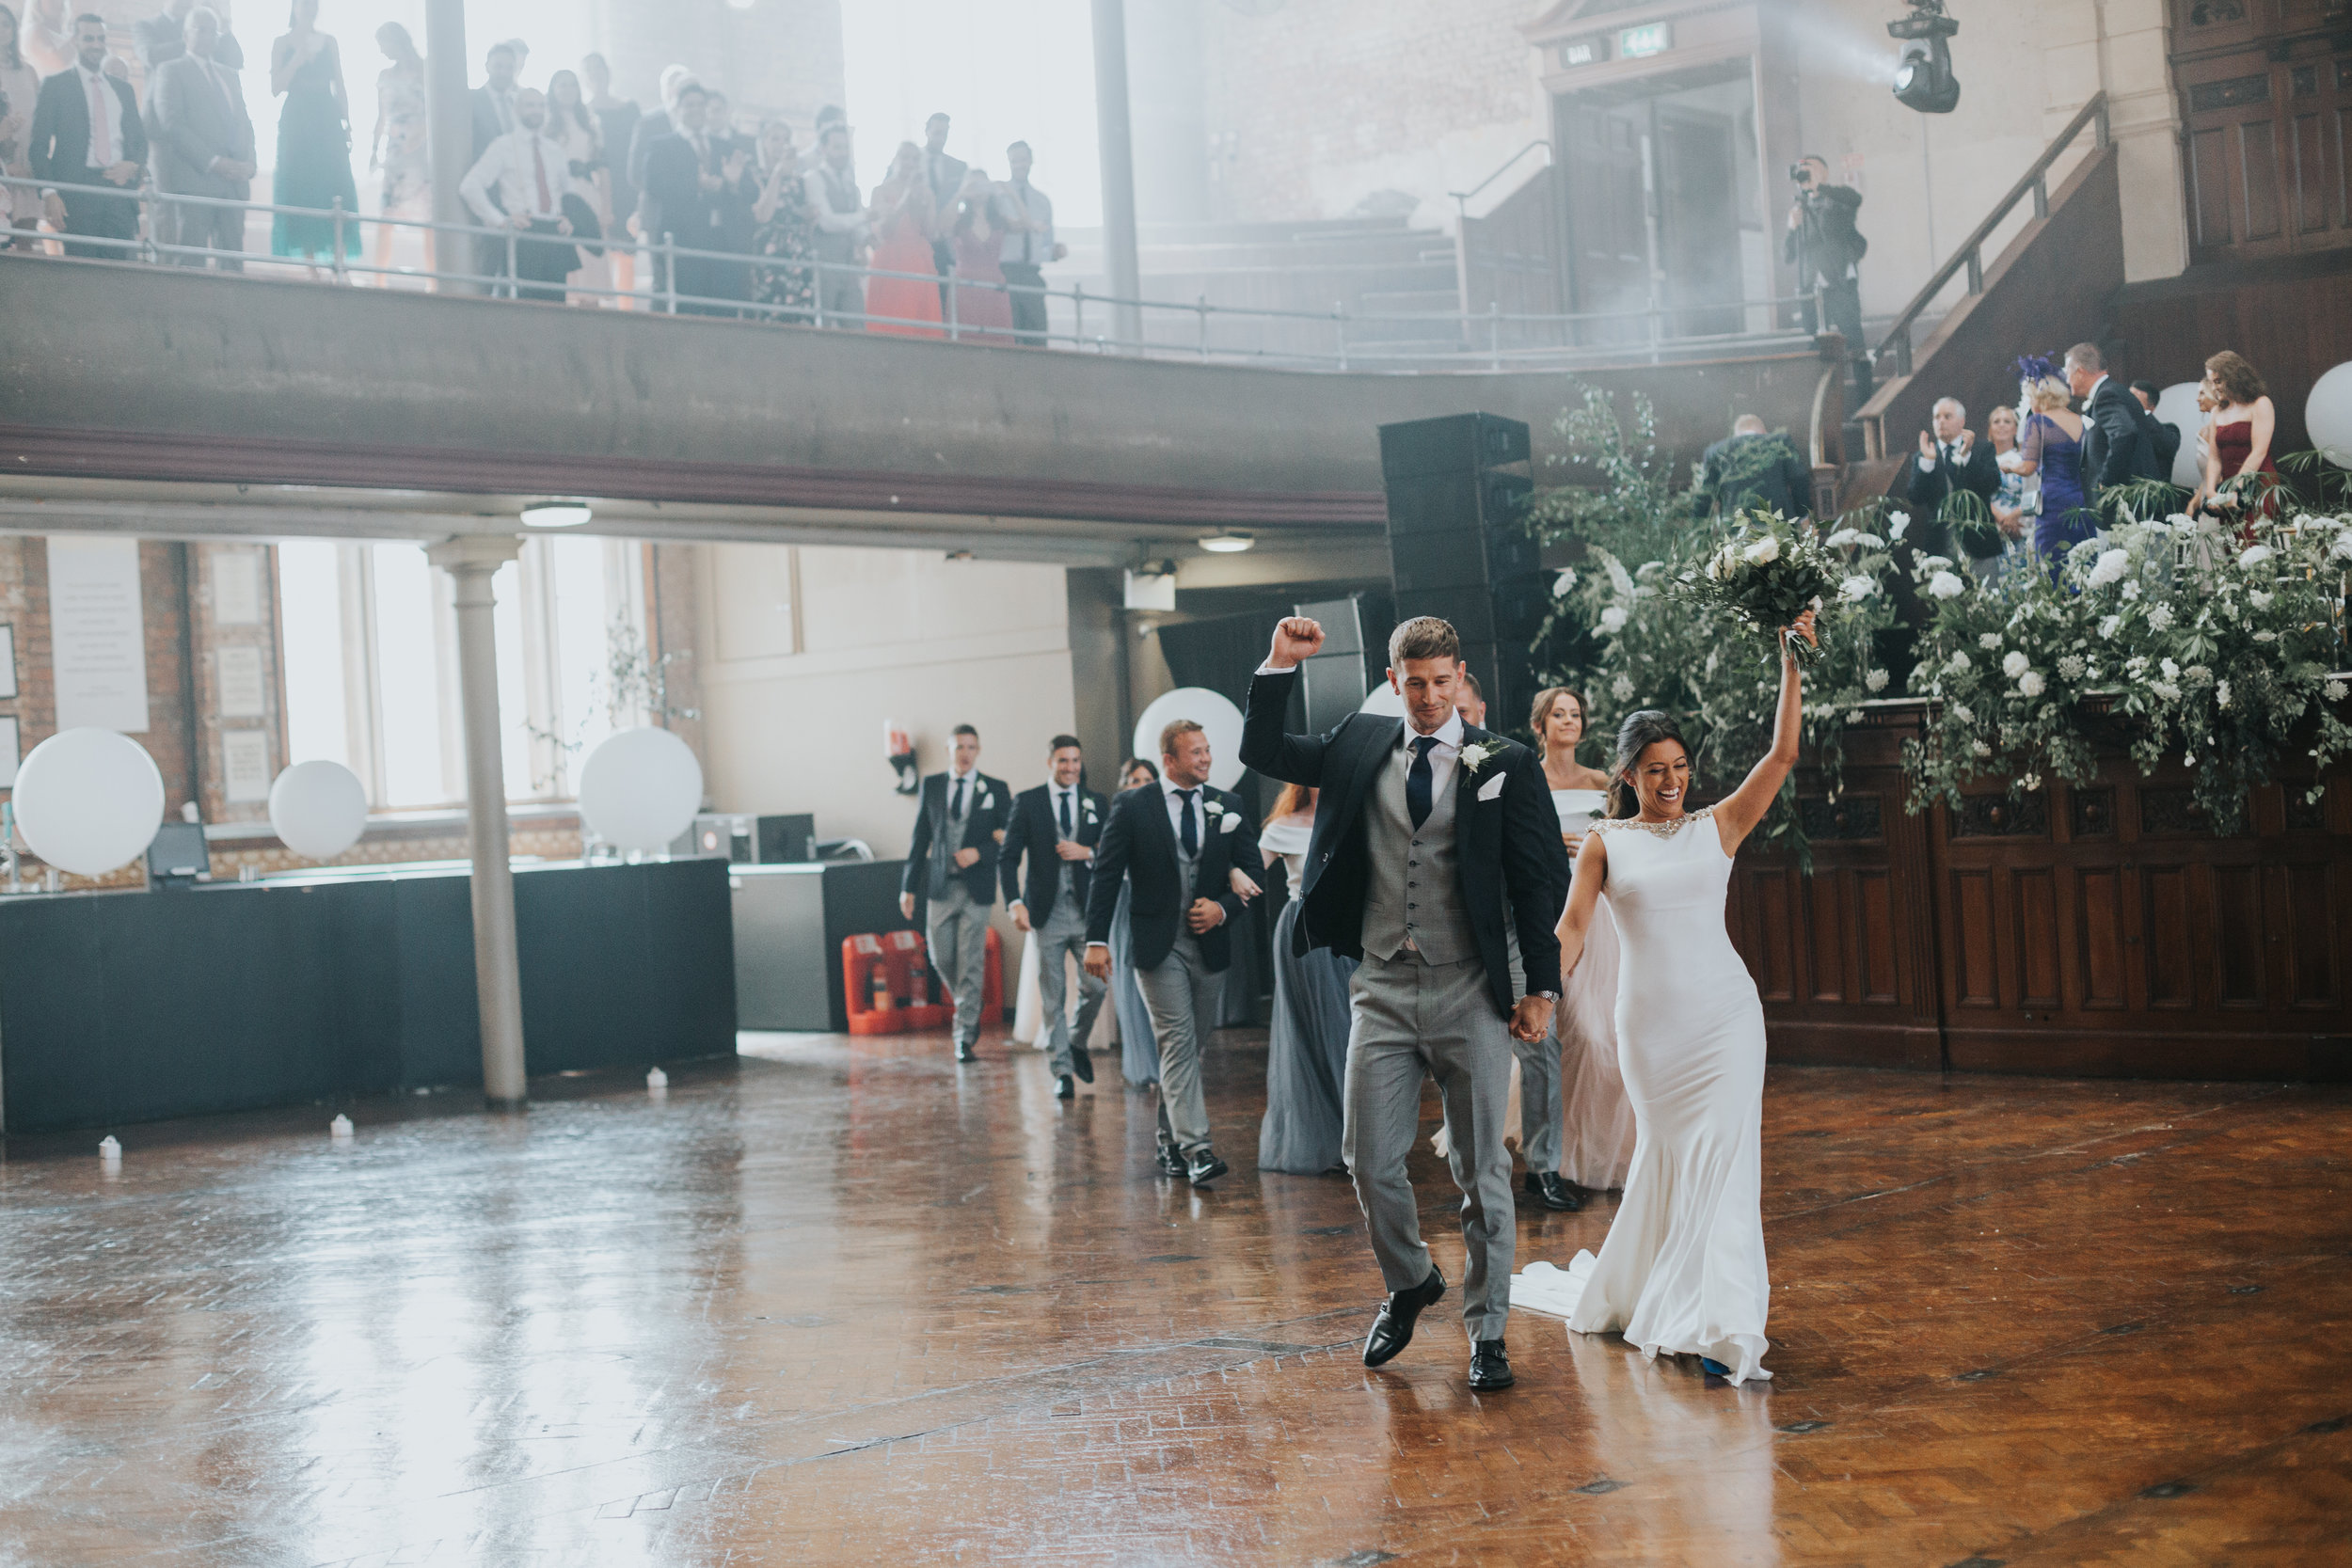 Bride and groom raise hands in the air as they make their way across the main hall floor to an audience of cheering guests!